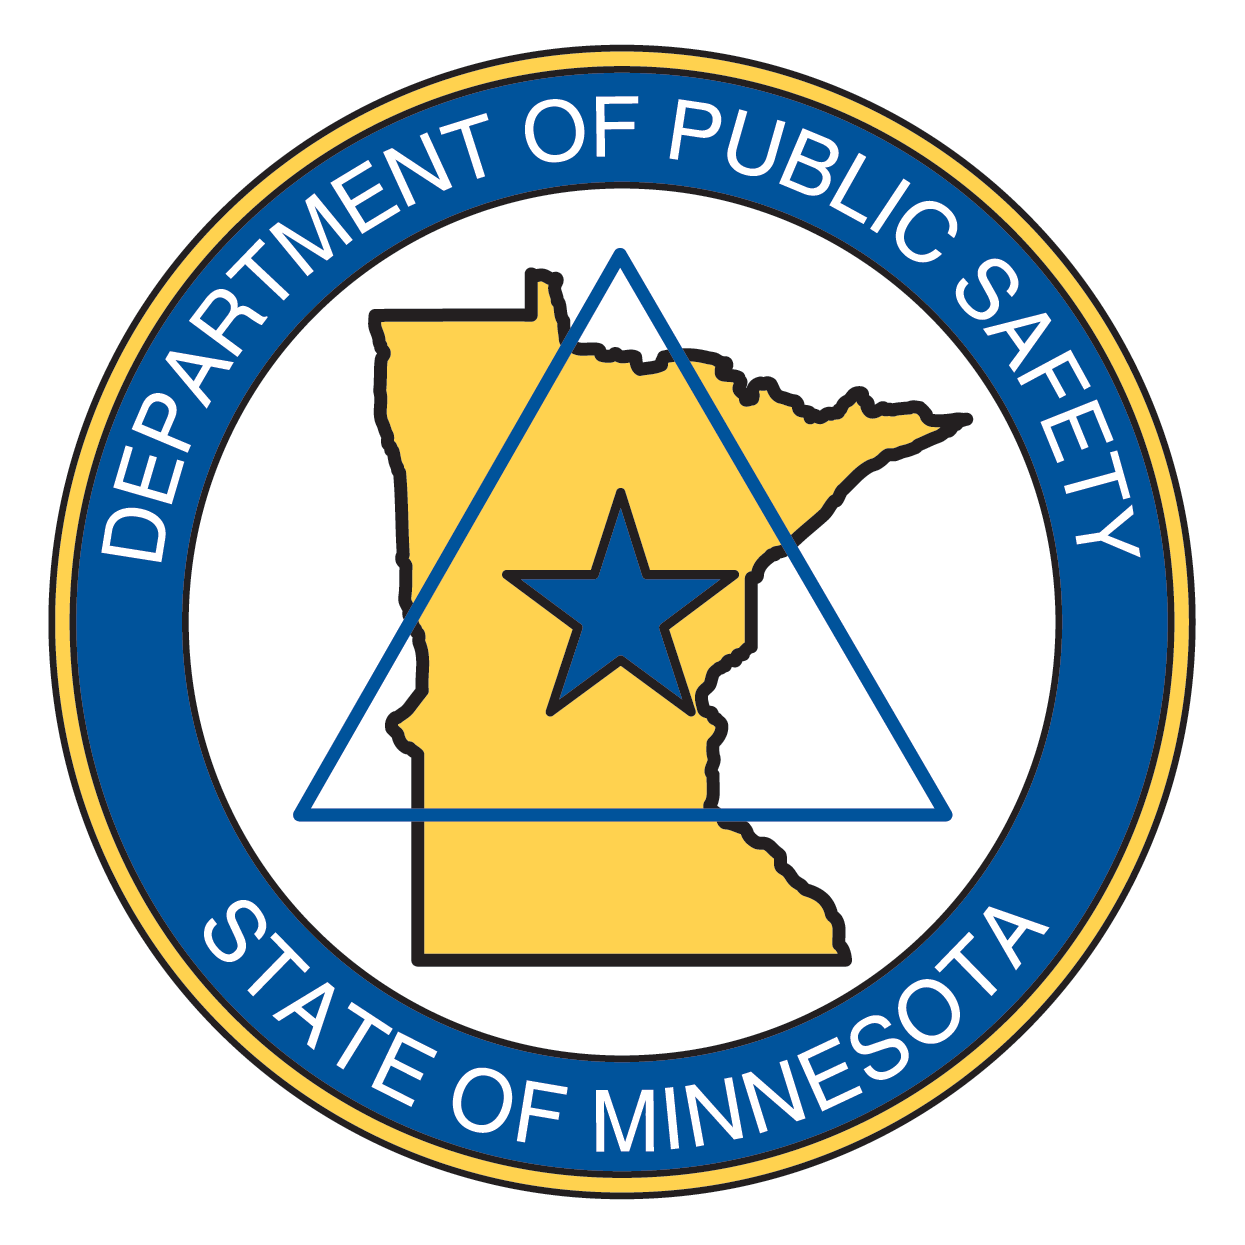 Pin on Minnesota Department of Public Safety